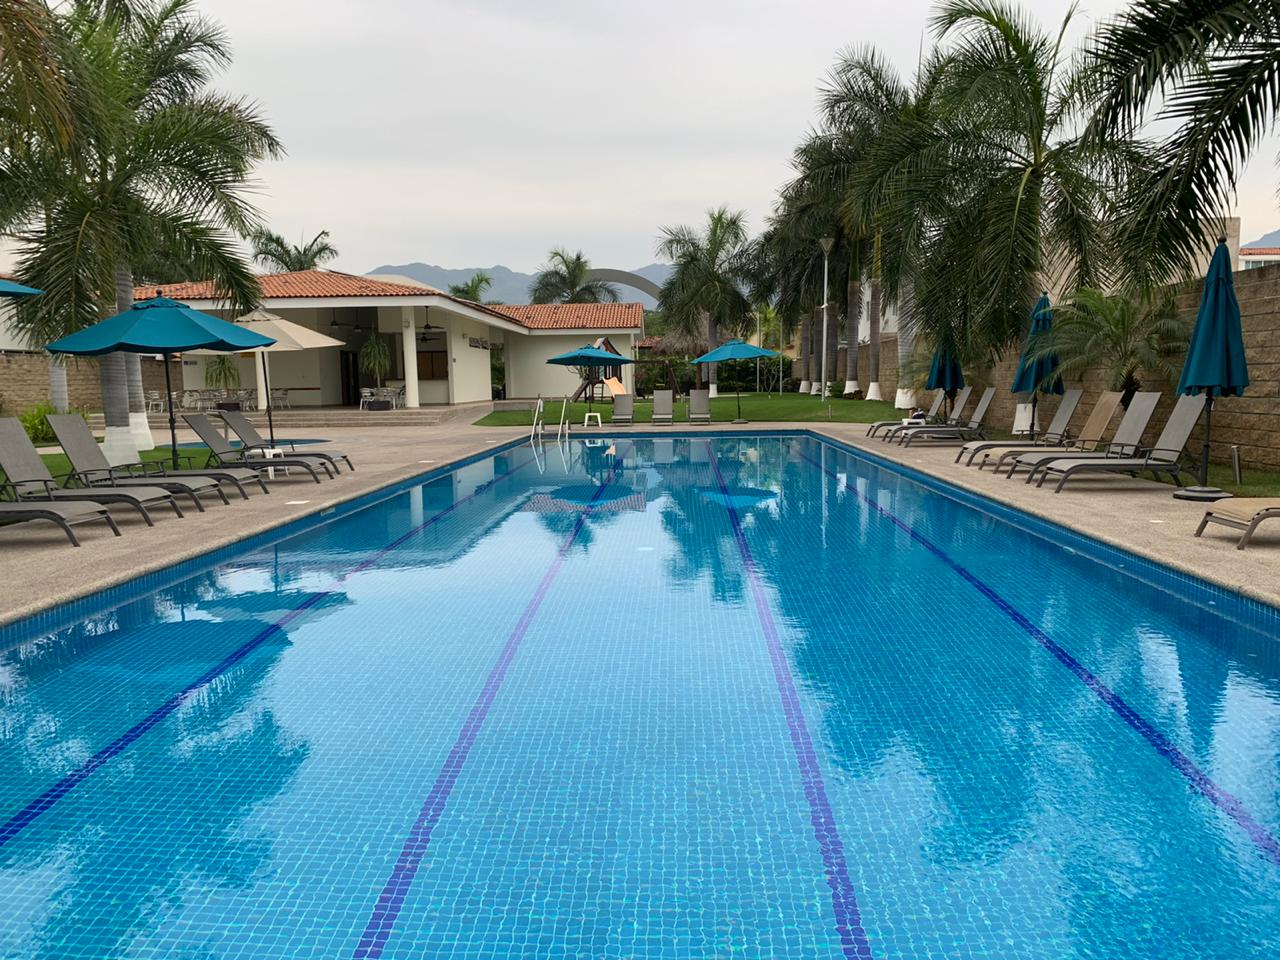 Furnished or Unfurnished House for Rent in Entre Ríos Fluvial Vallarta